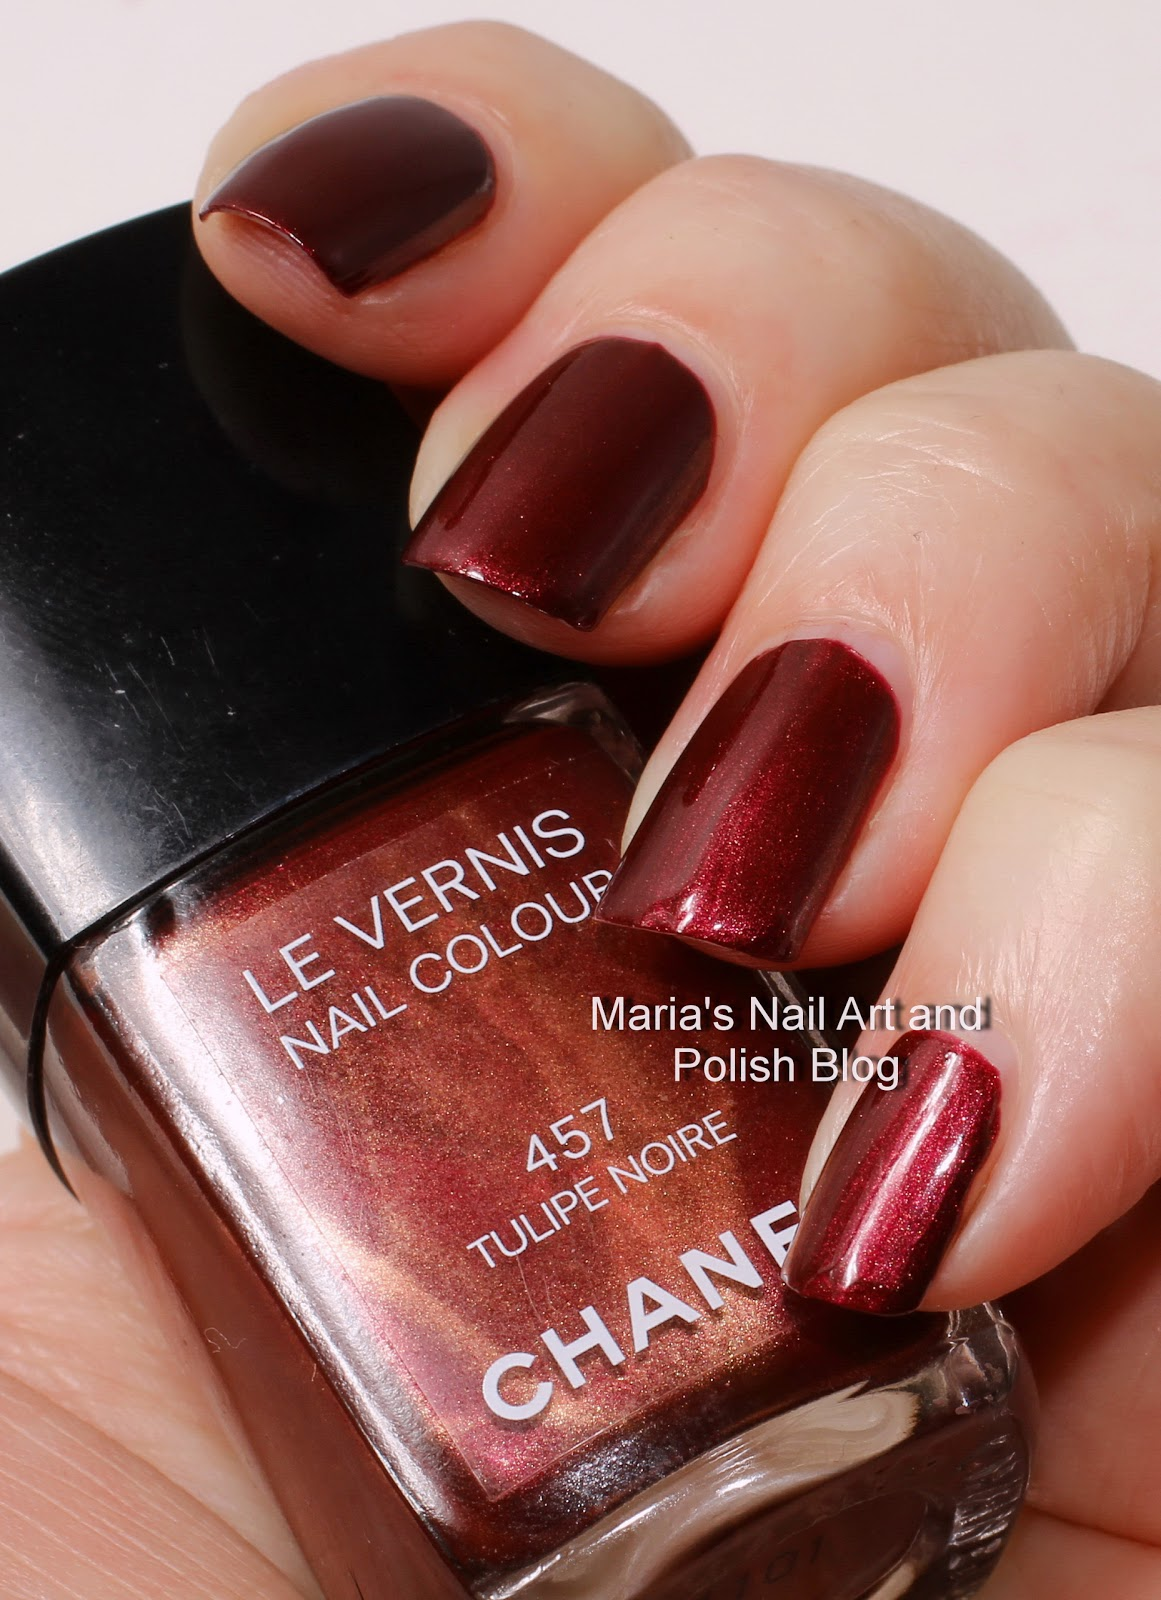 Marias Nail Art and Polish Blog: Chanel Tulipe Noire 457 ...